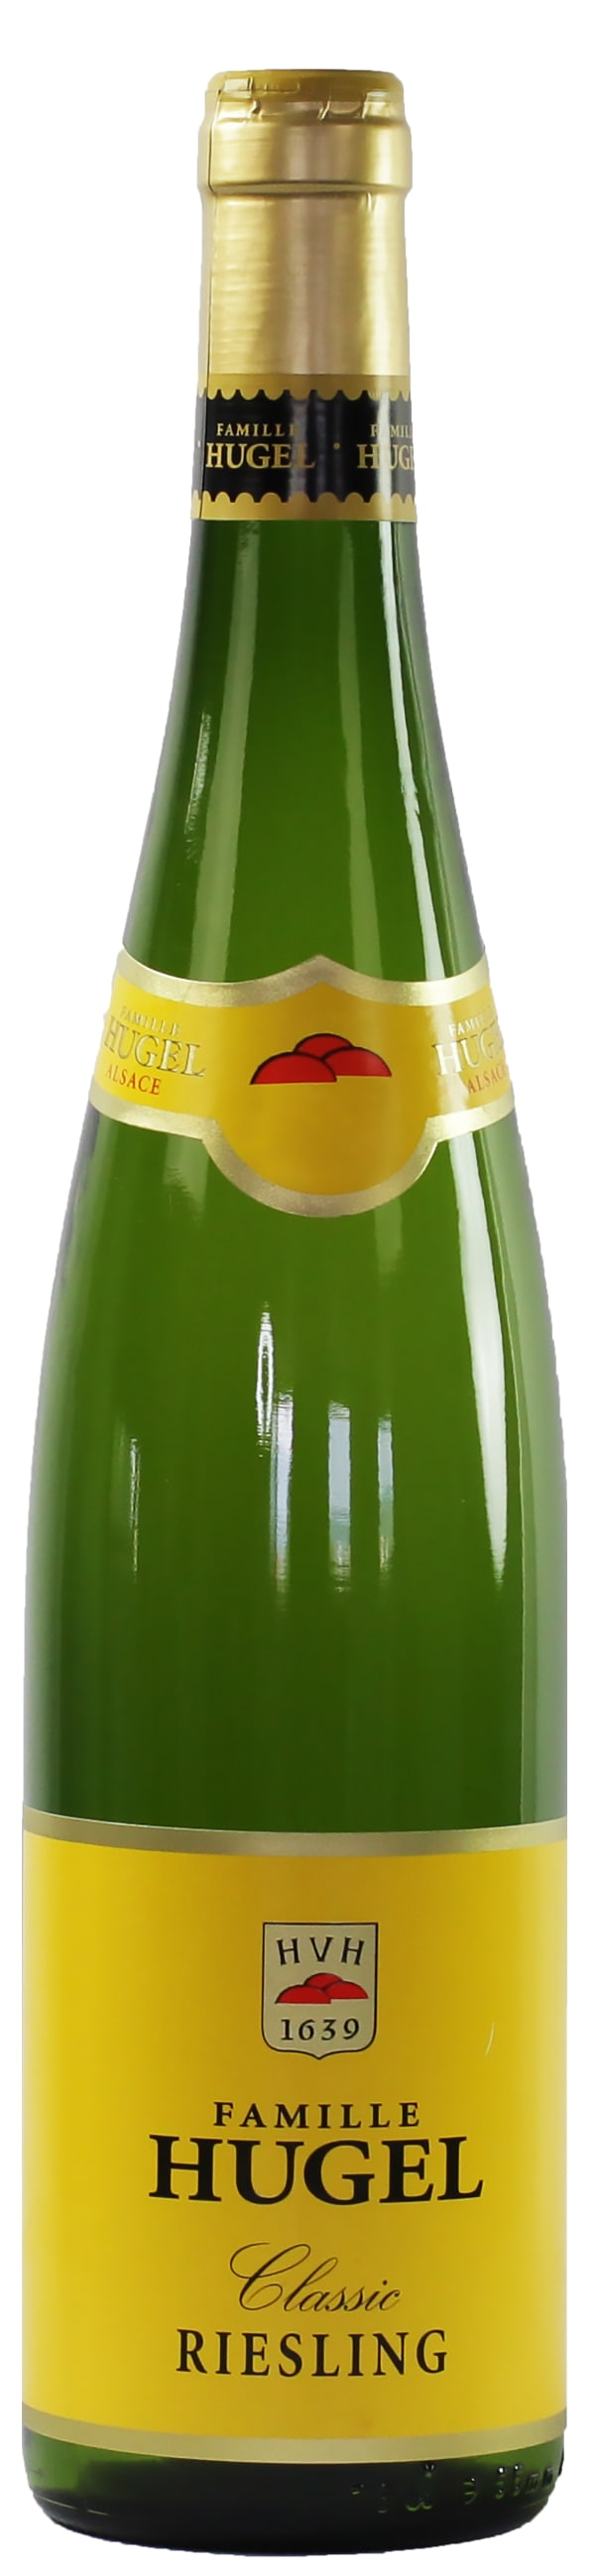 Famille Hugel Classic Riesling 2016